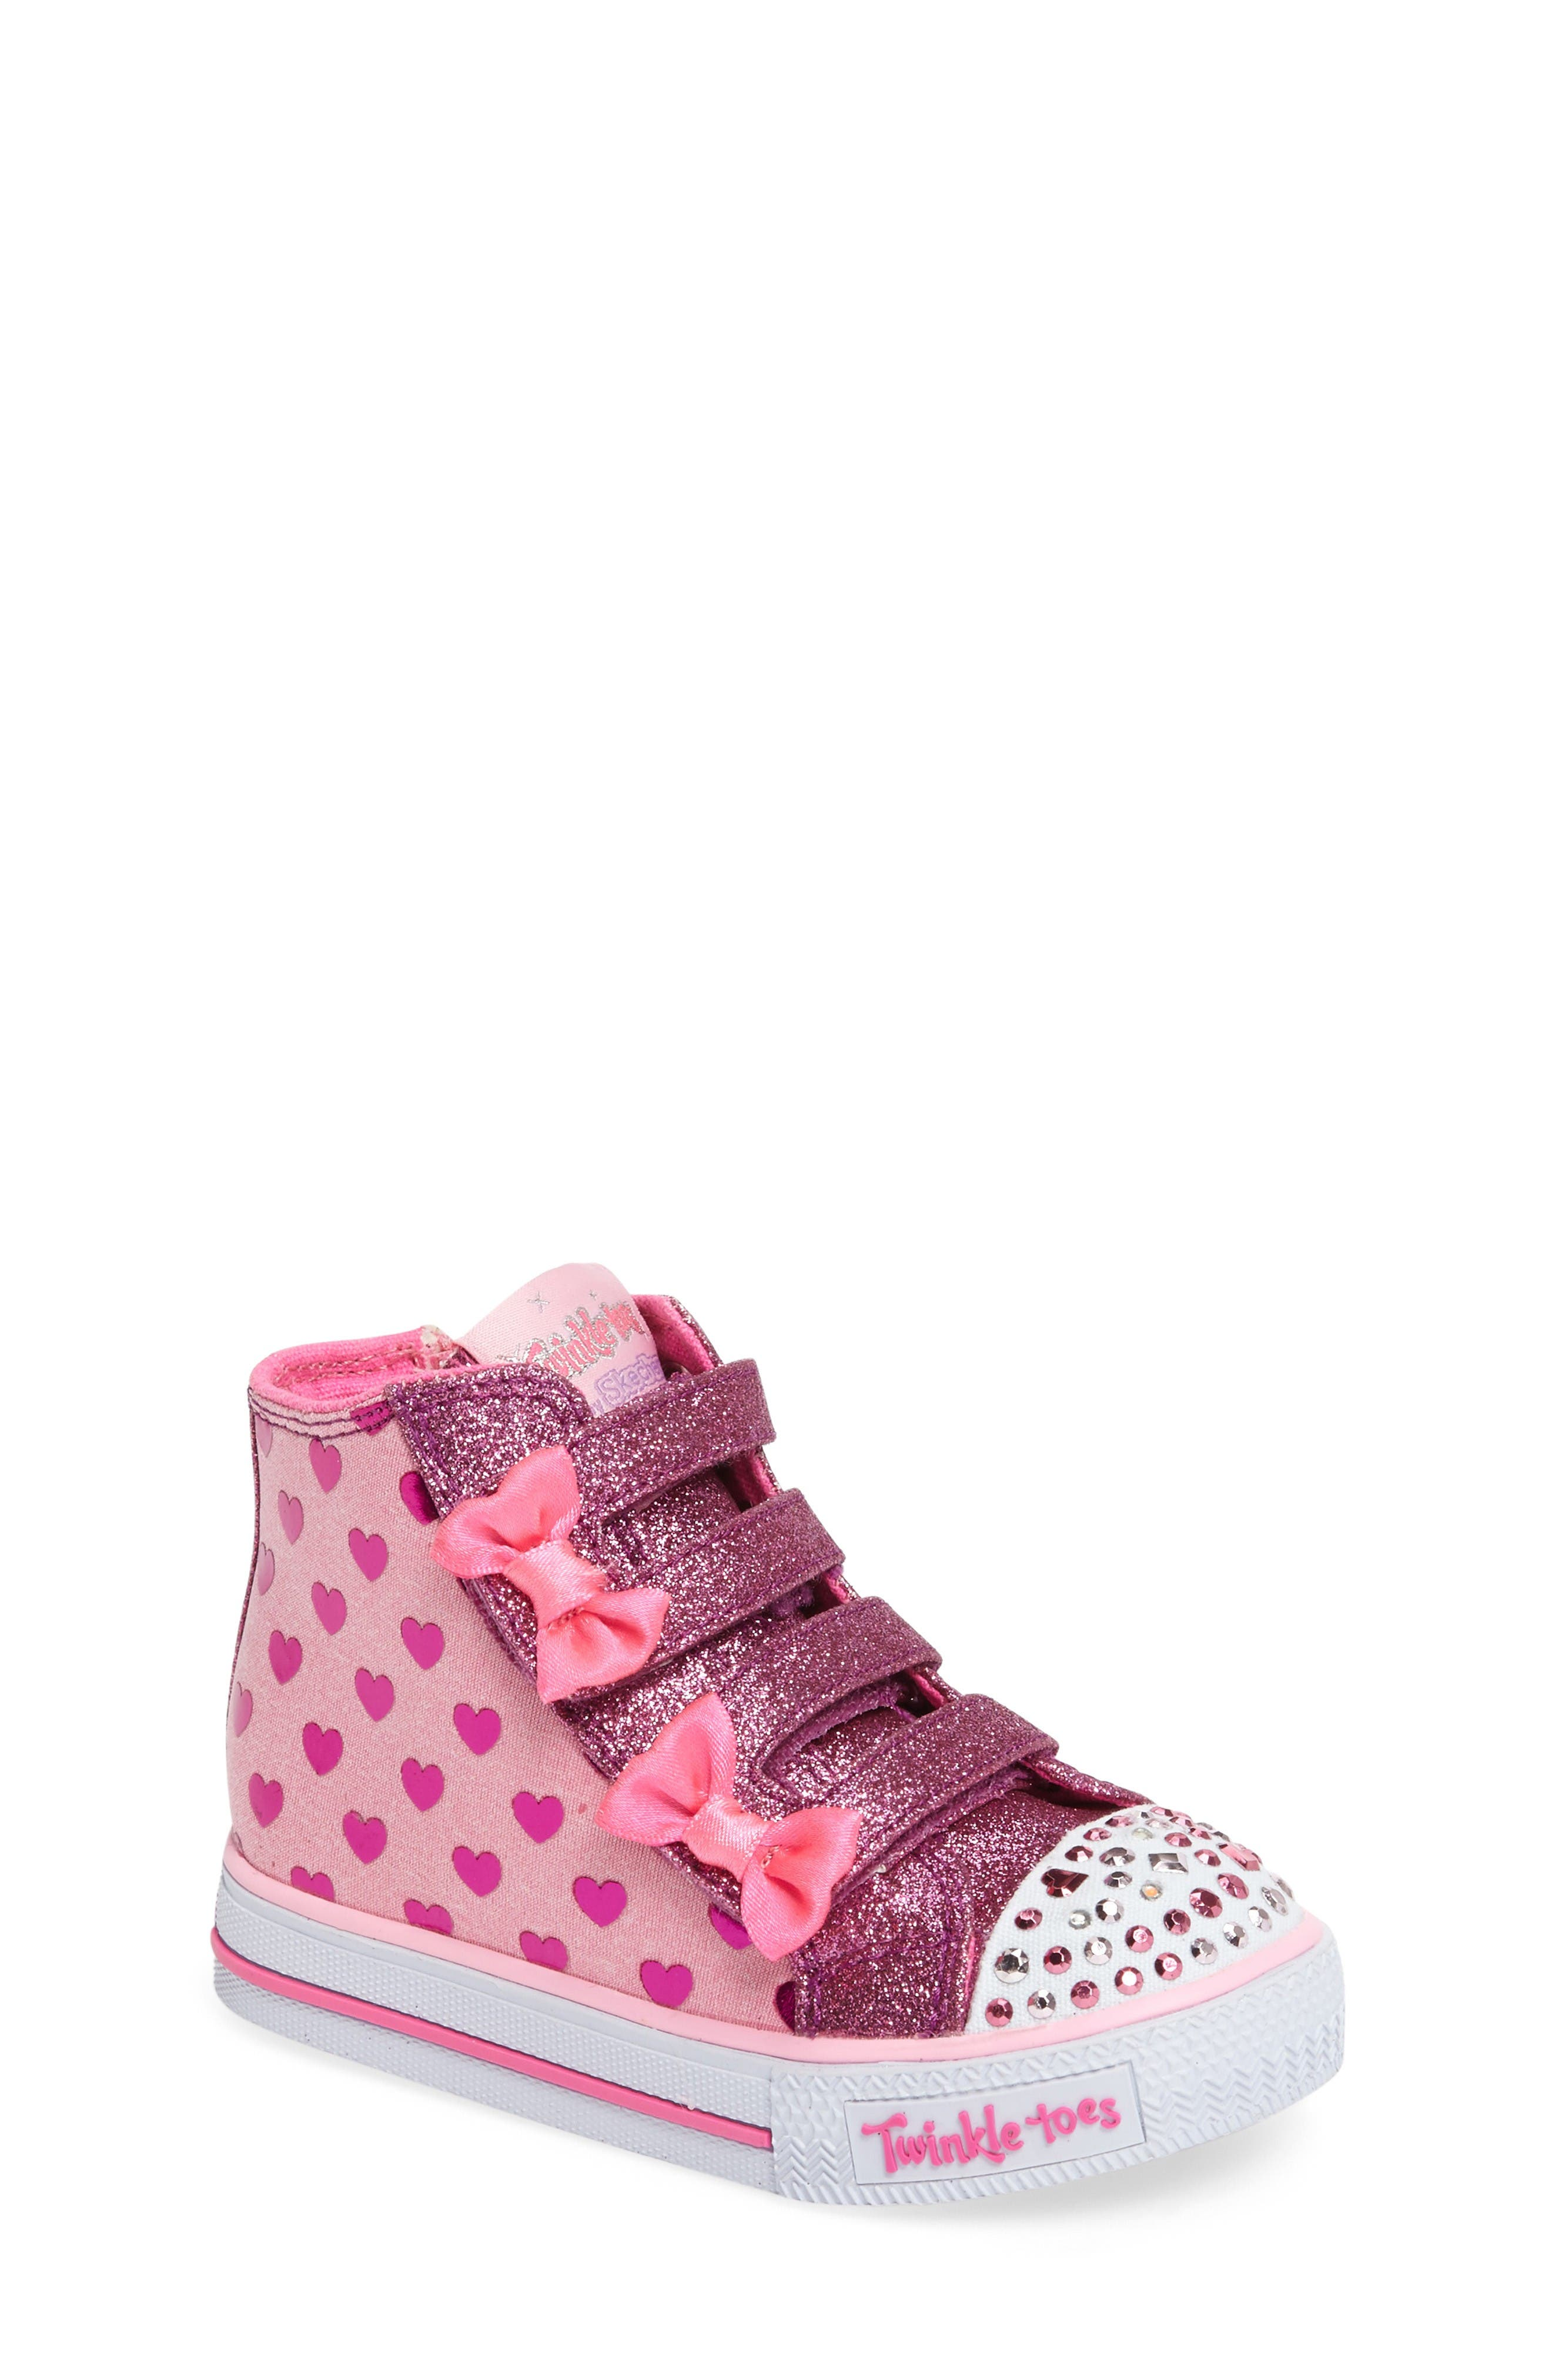 'Twinkle Toes - Shuffles' High Top Sneaker,                         Main,                         color, Pink/ Hot Pink